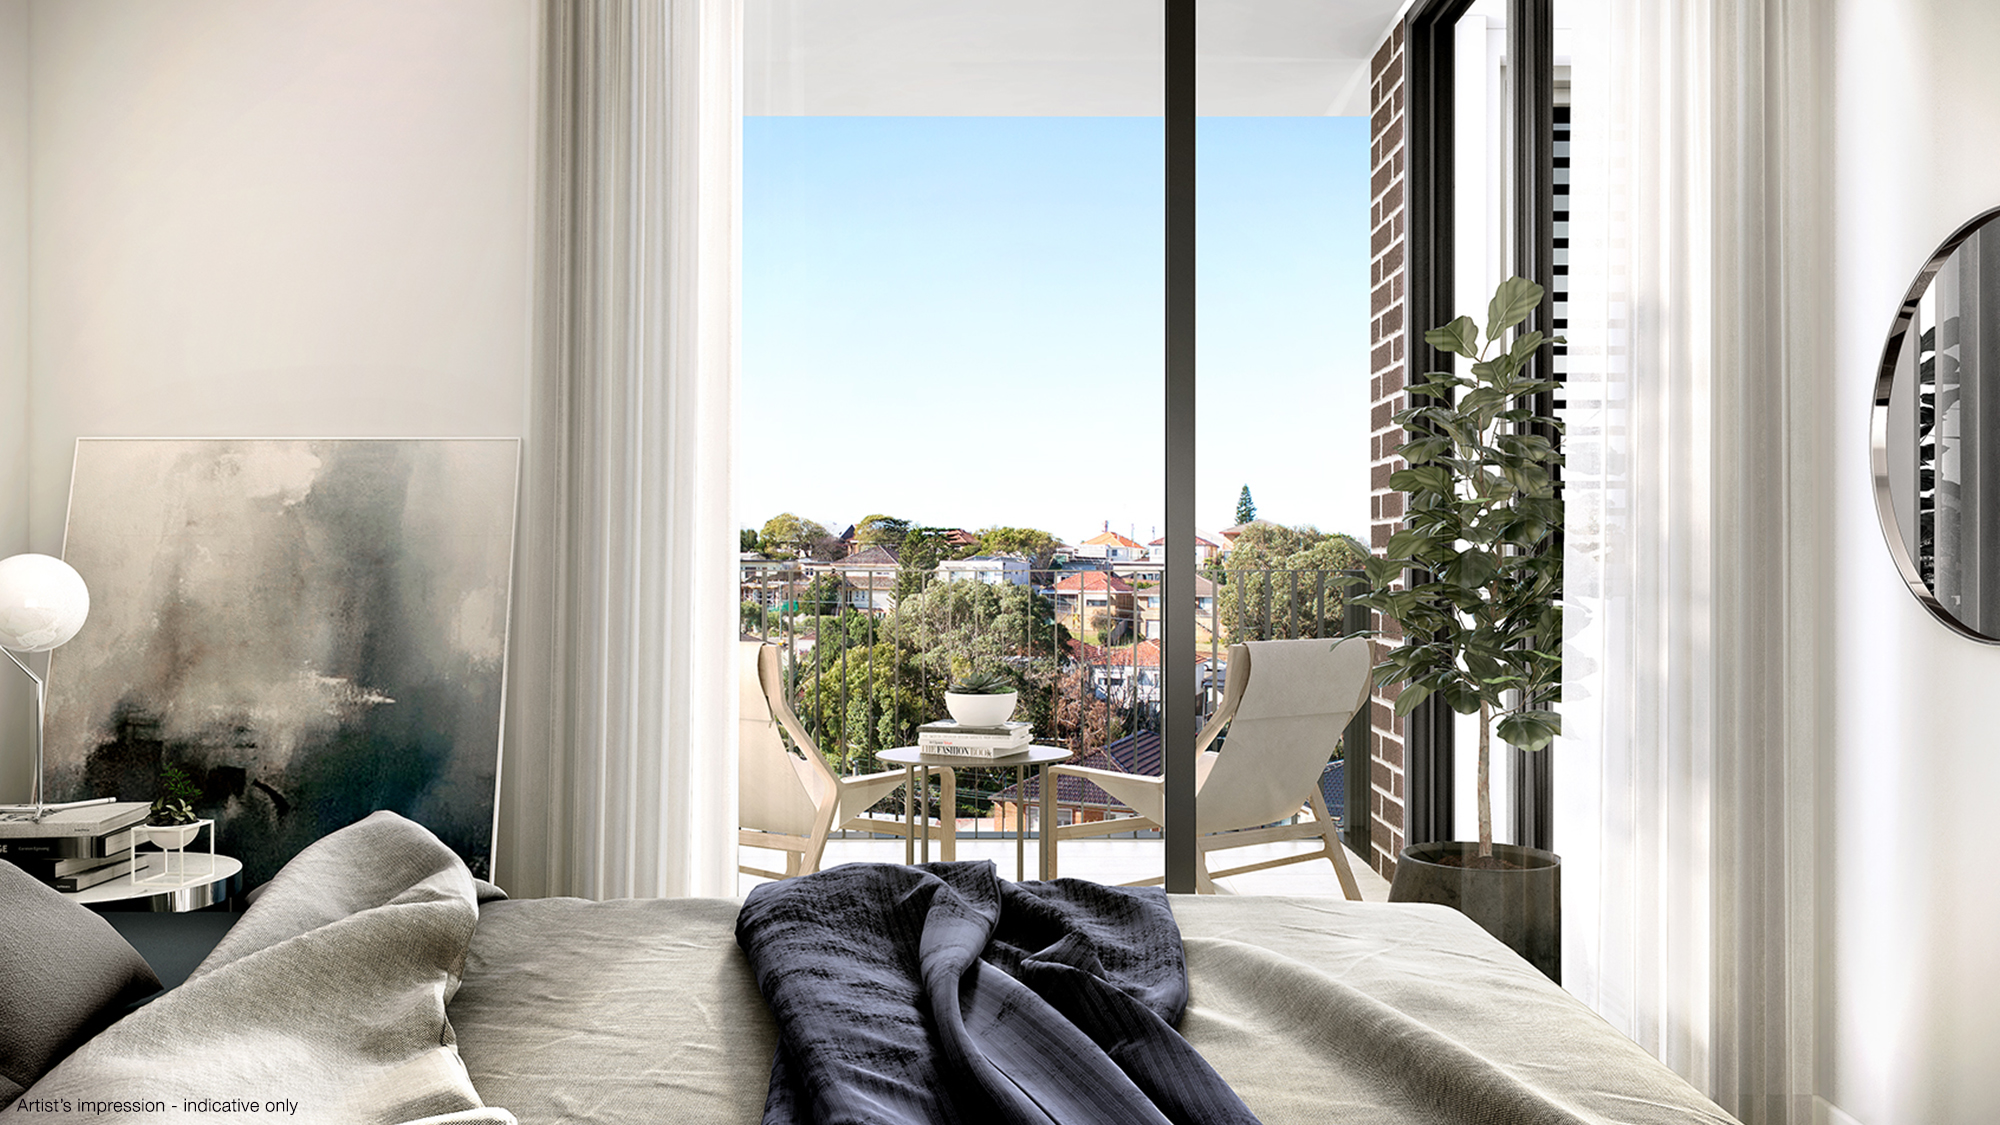 2 Bedroom Apartments Sydney For Sale Wilco Tailor 39 S Walk